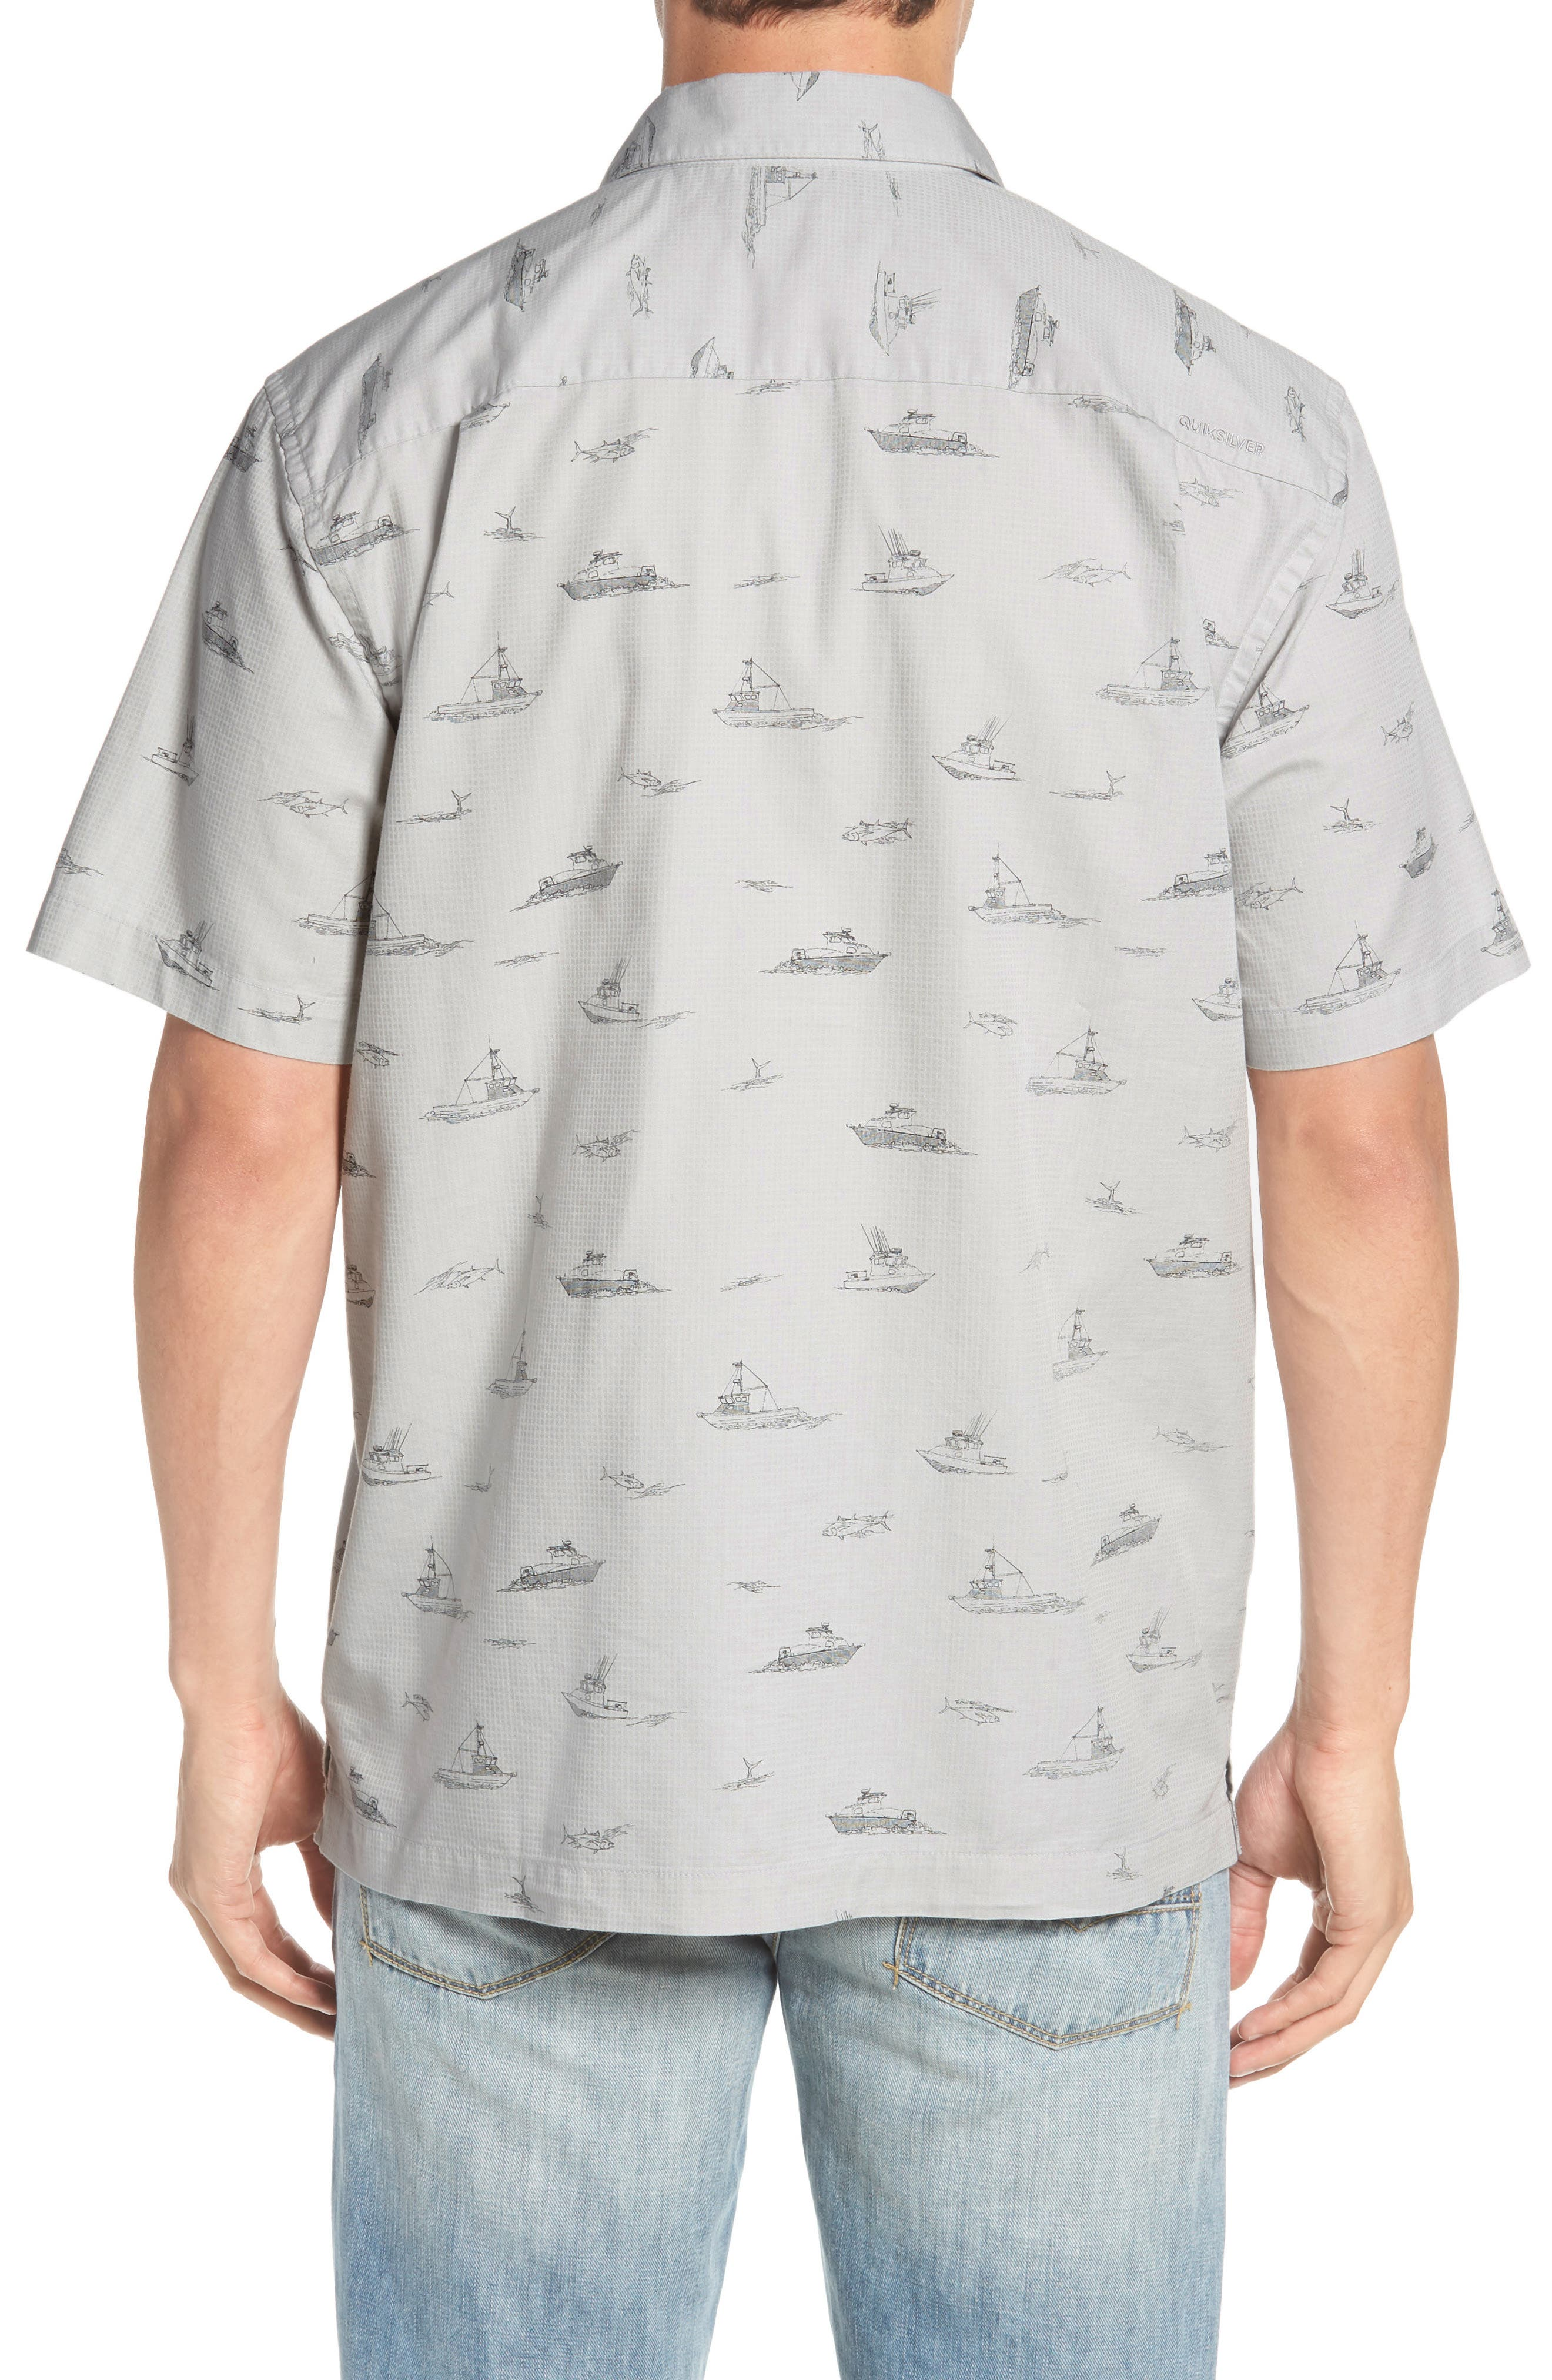 Channel Cruising Classic Fit Sport Shirt,                             Alternate thumbnail 2, color,                             HIGHRISE